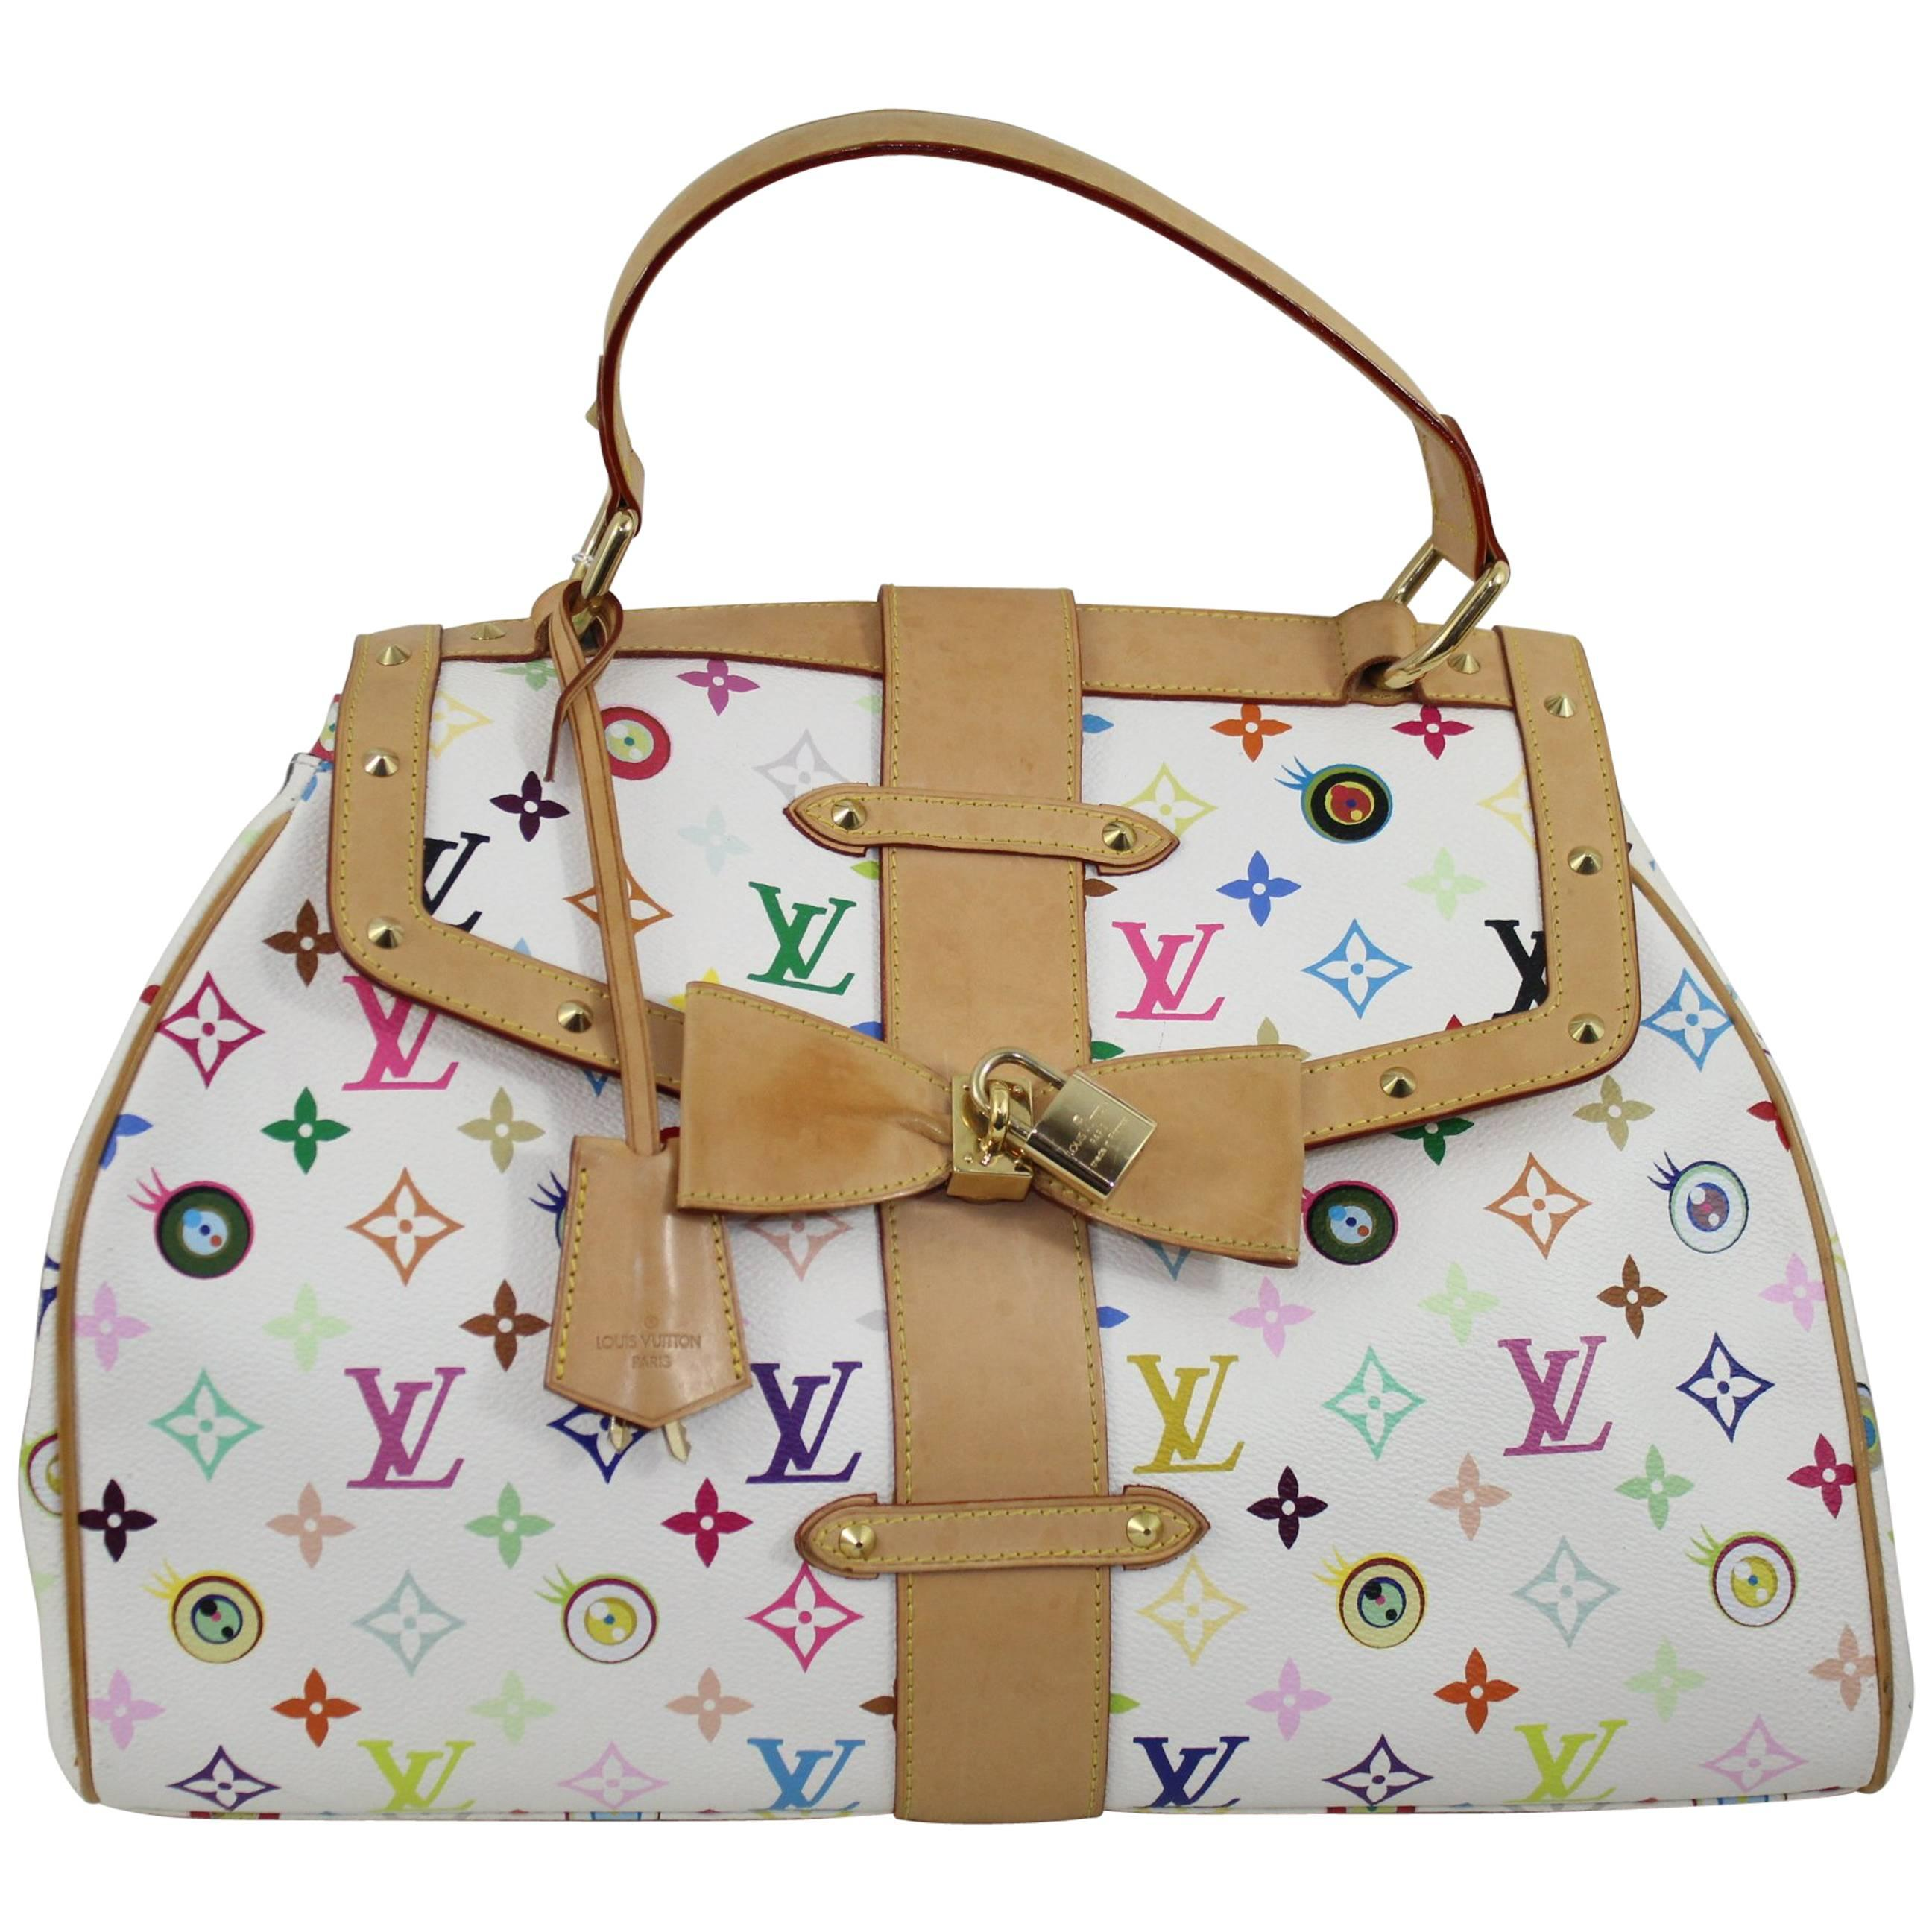 0520e25d678c Louis Vuitton Nulmbered limited Edition